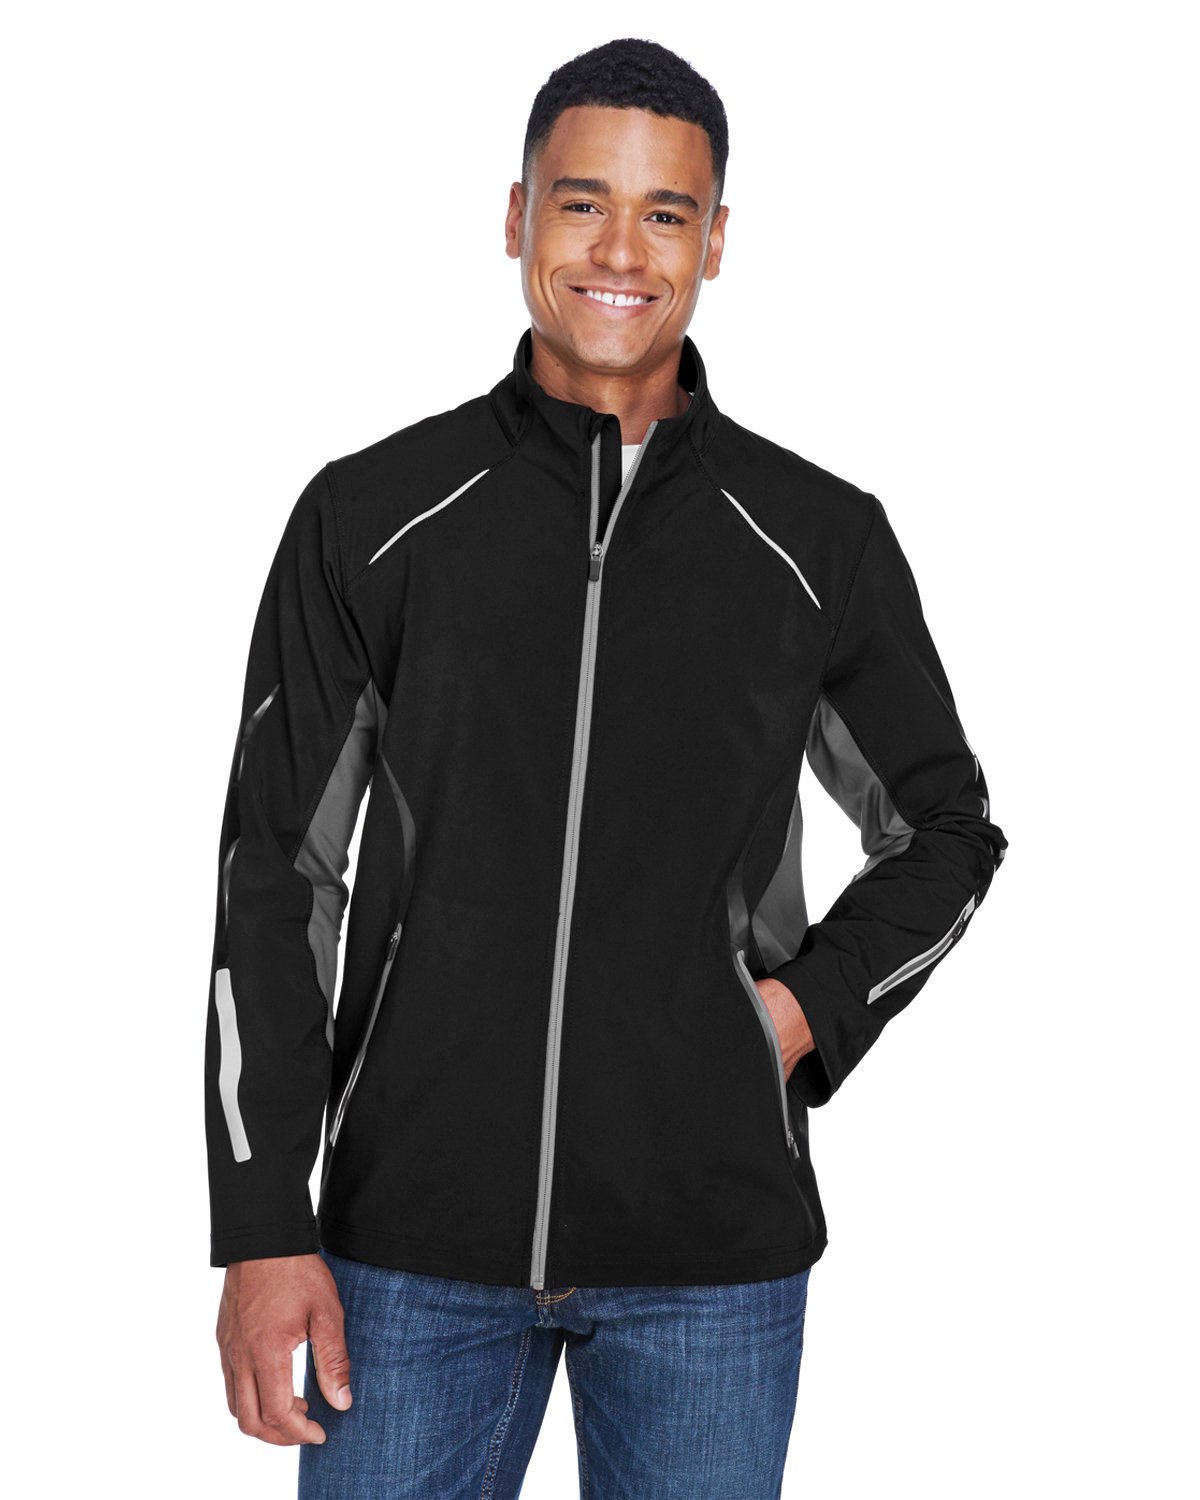 North End Men's Pursuit Three-Layer Light Bonded Hybrid Soft Shell Jacket with Laser Perforation BLACK